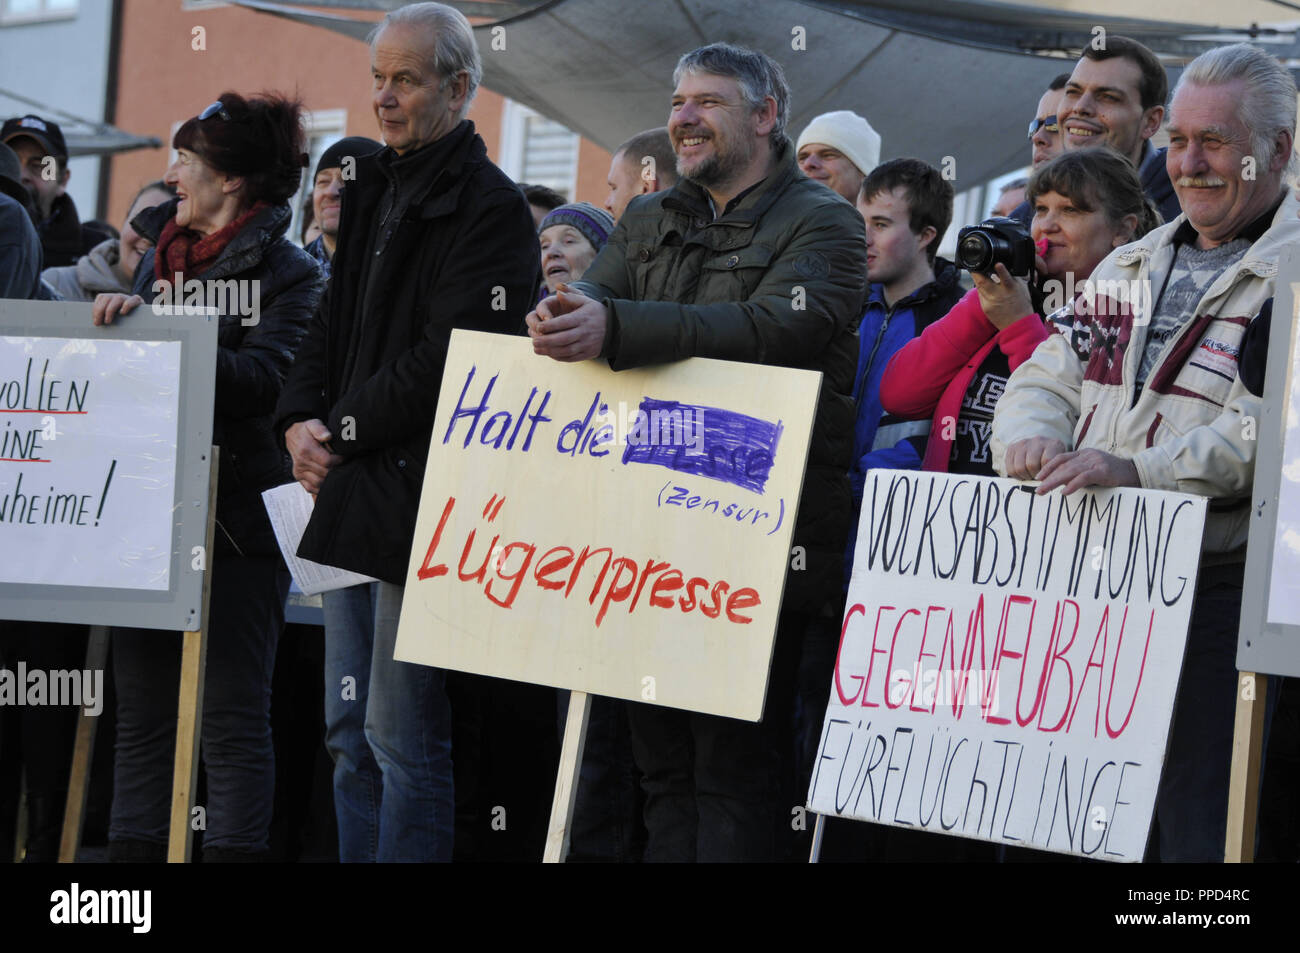 Russian Germans gather in the town square of Traunreut to demonstrate against the refugee policies of Angela Merkel, the Islam and the alleged lying press. - Stock Image